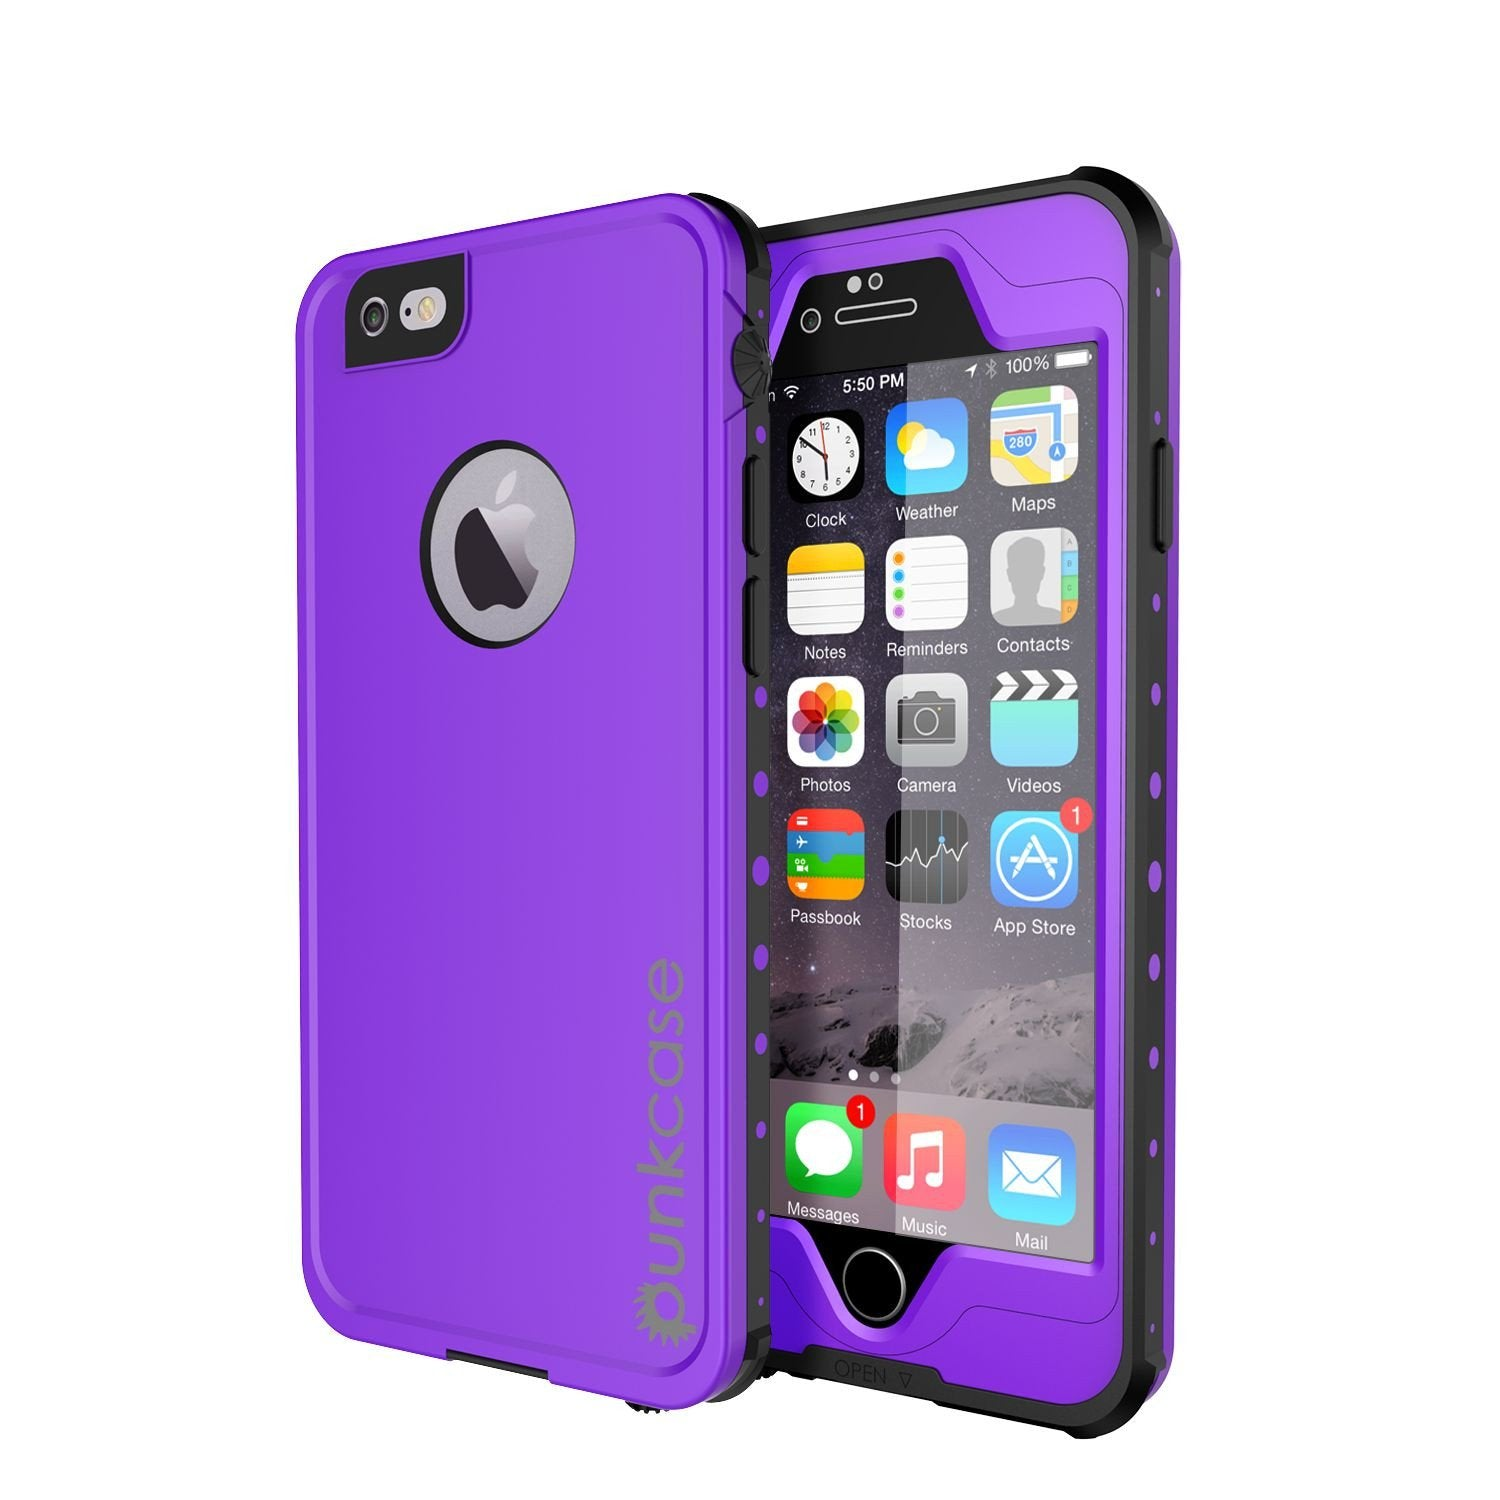 iPhone 6S+/6+ Plus Waterproof Case, PUNKcase StudStar Purple w/ Attached Screen Protector | Warranty